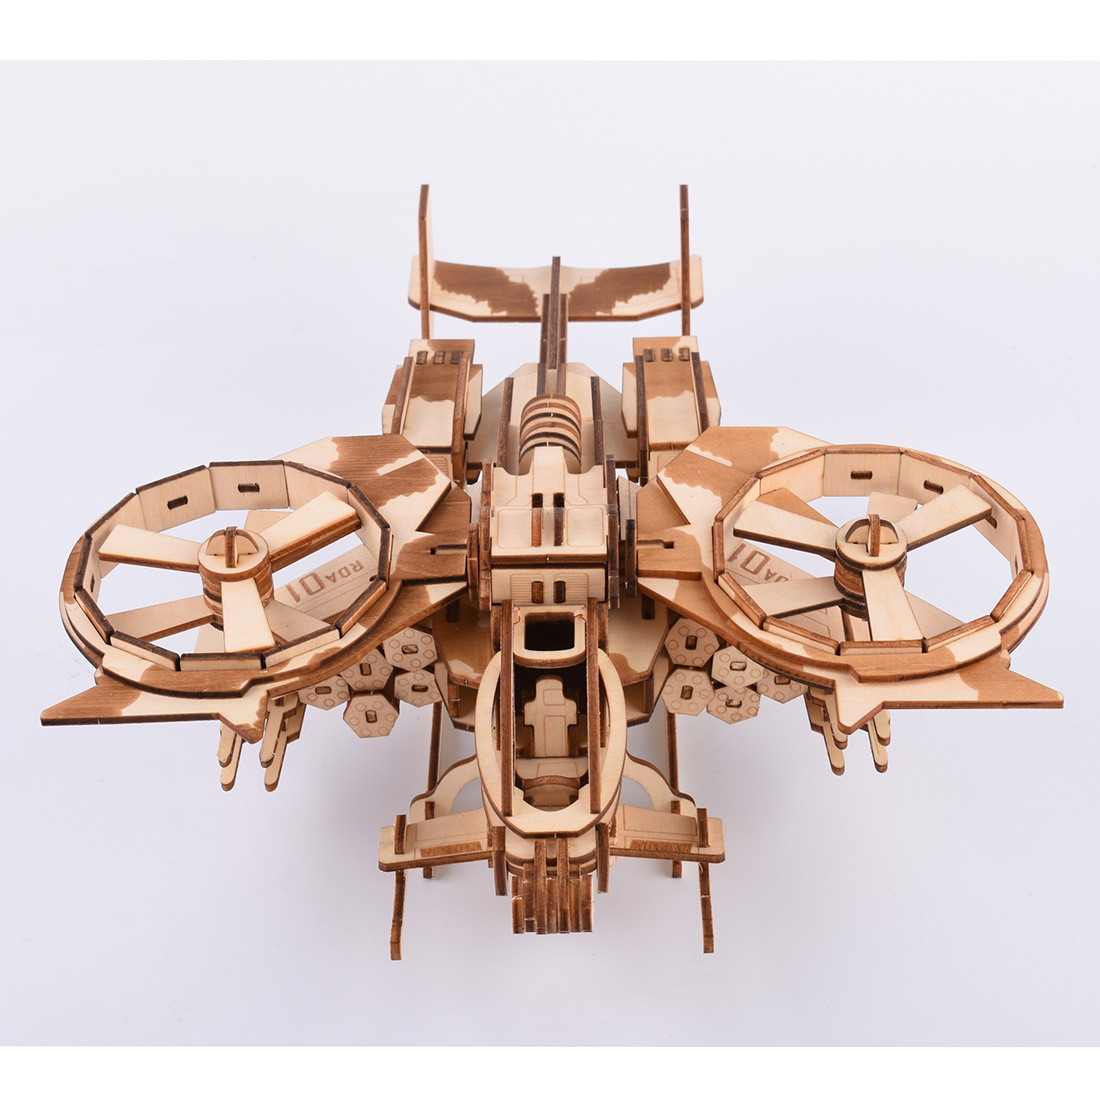 189pcs High-precision Laser Cutting Puzzle 3D Wooden Jigsaw Model Building Kits Scorpion Fighter Toys & Hobbies Drop shipping189pcs High-precision Laser Cutting Puzzle 3D Wooden Jigsaw Model Building Kits Scorpion Fighter Toys & Hobbies Drop shipping